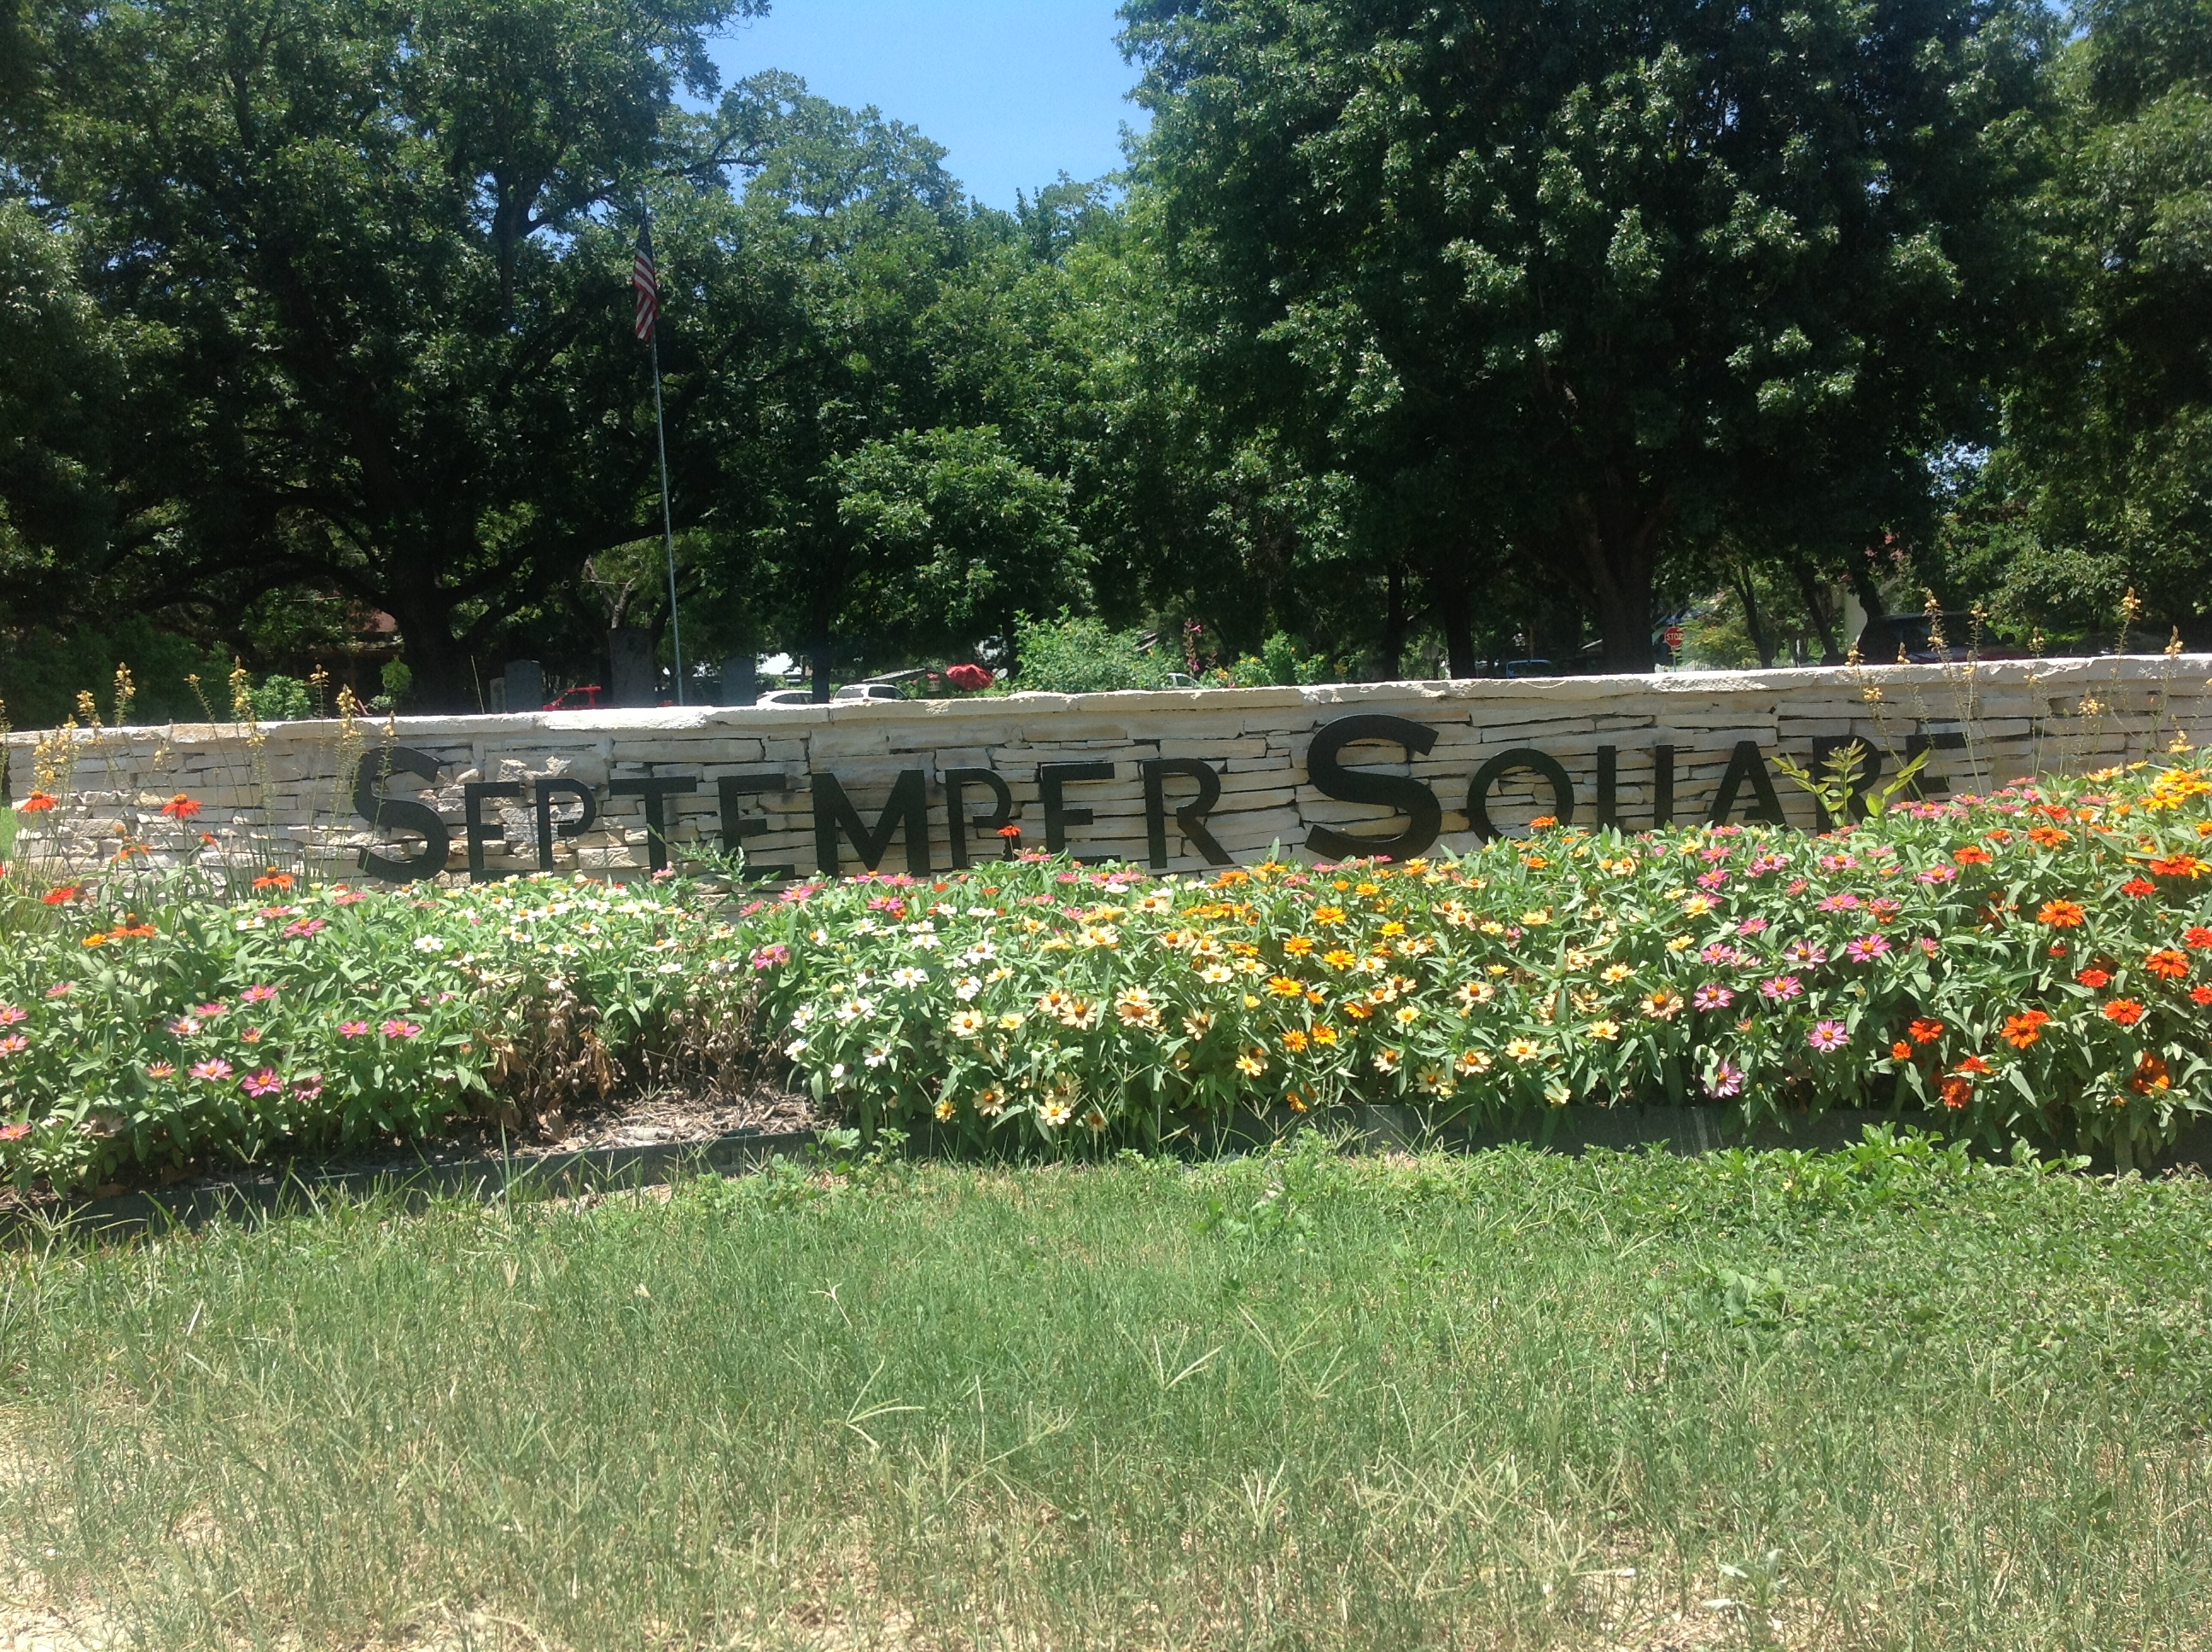 September Square entrance sign